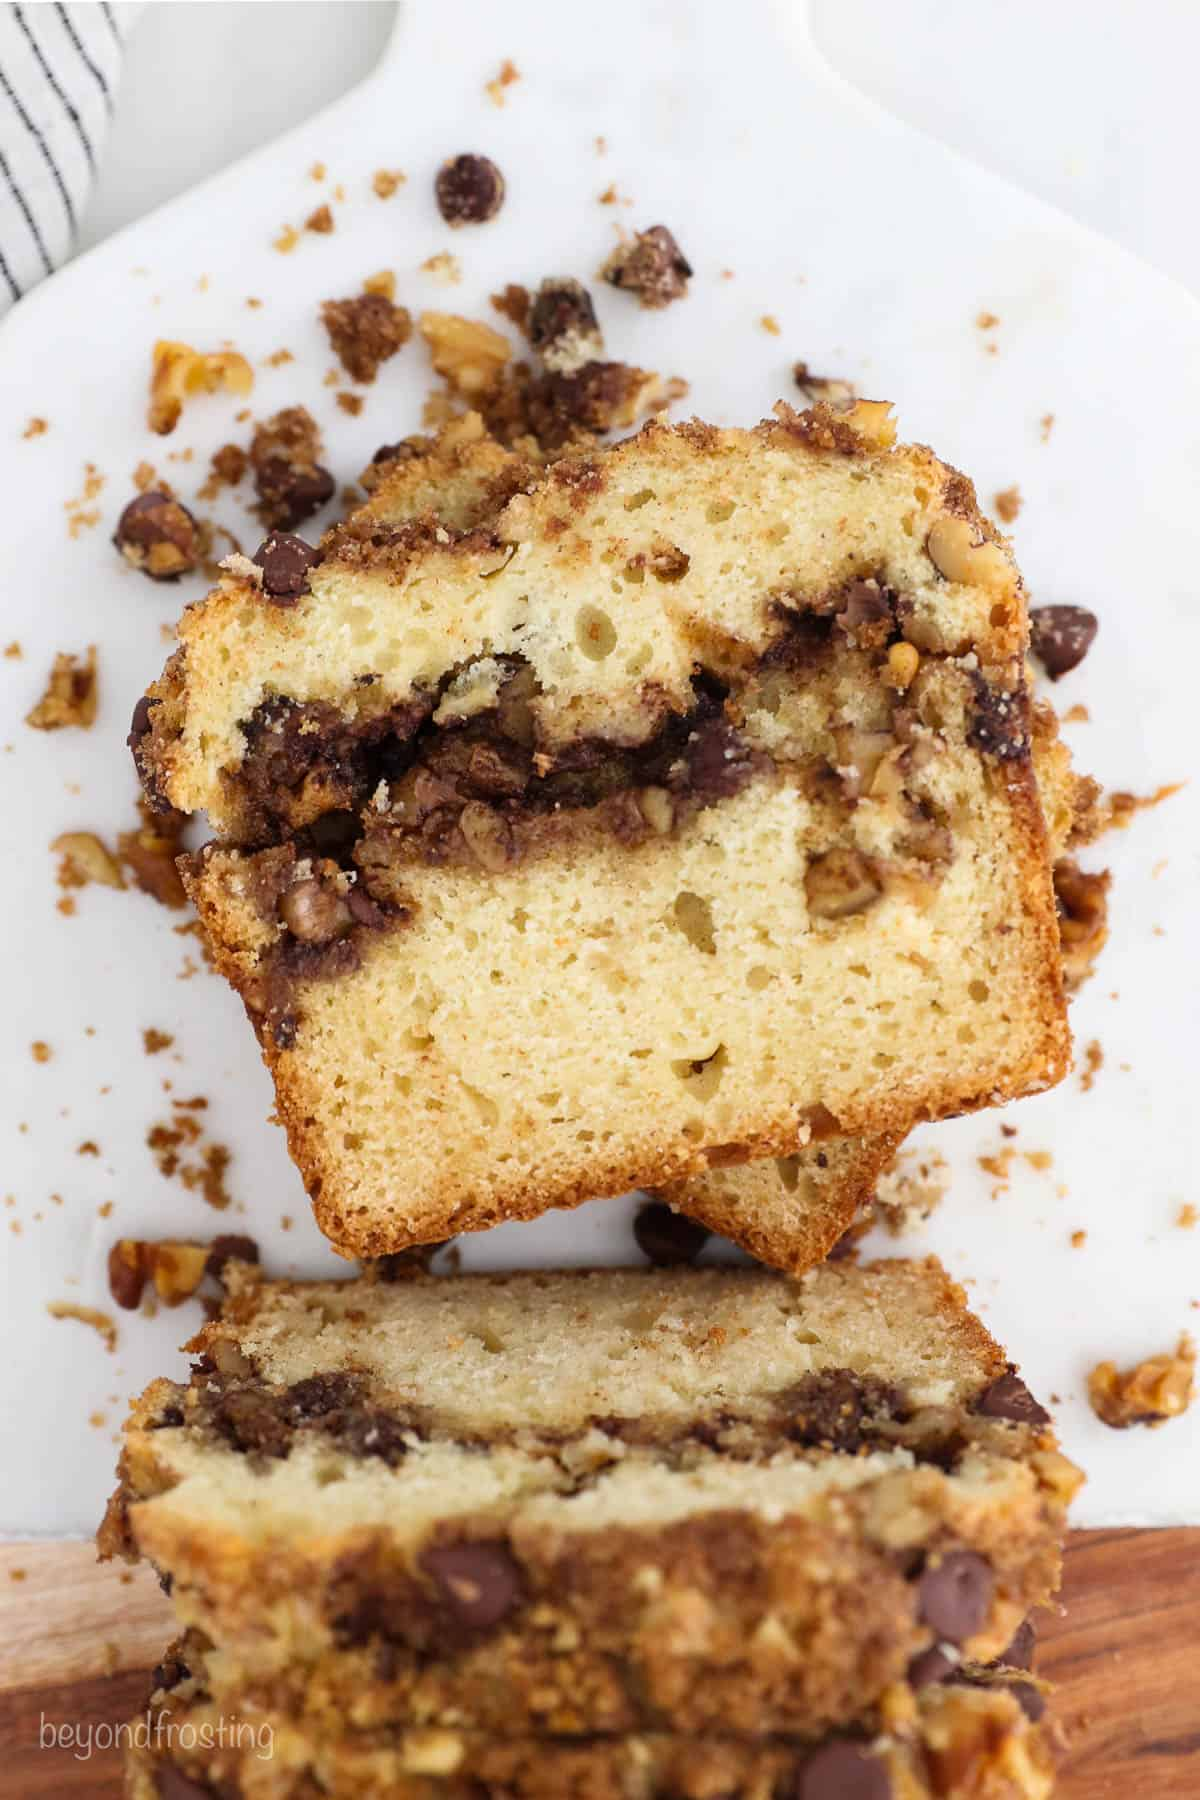 A slice of sour cream coffee cake with streusel topping